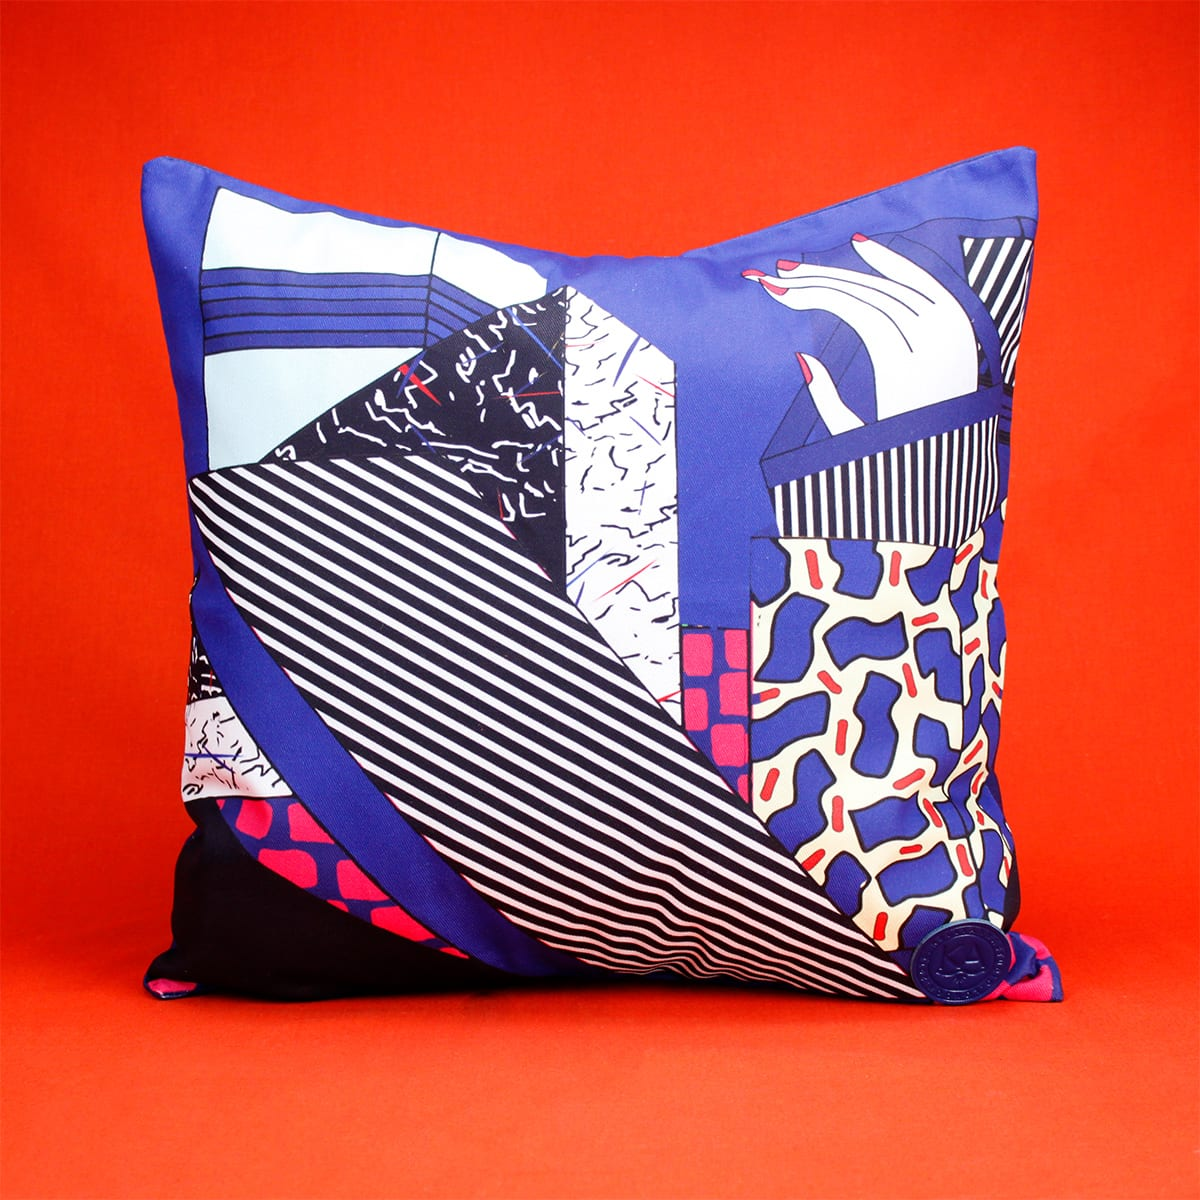 CUSHION COVER HANDS UP Kelly Anna London artwork Cool Machine store